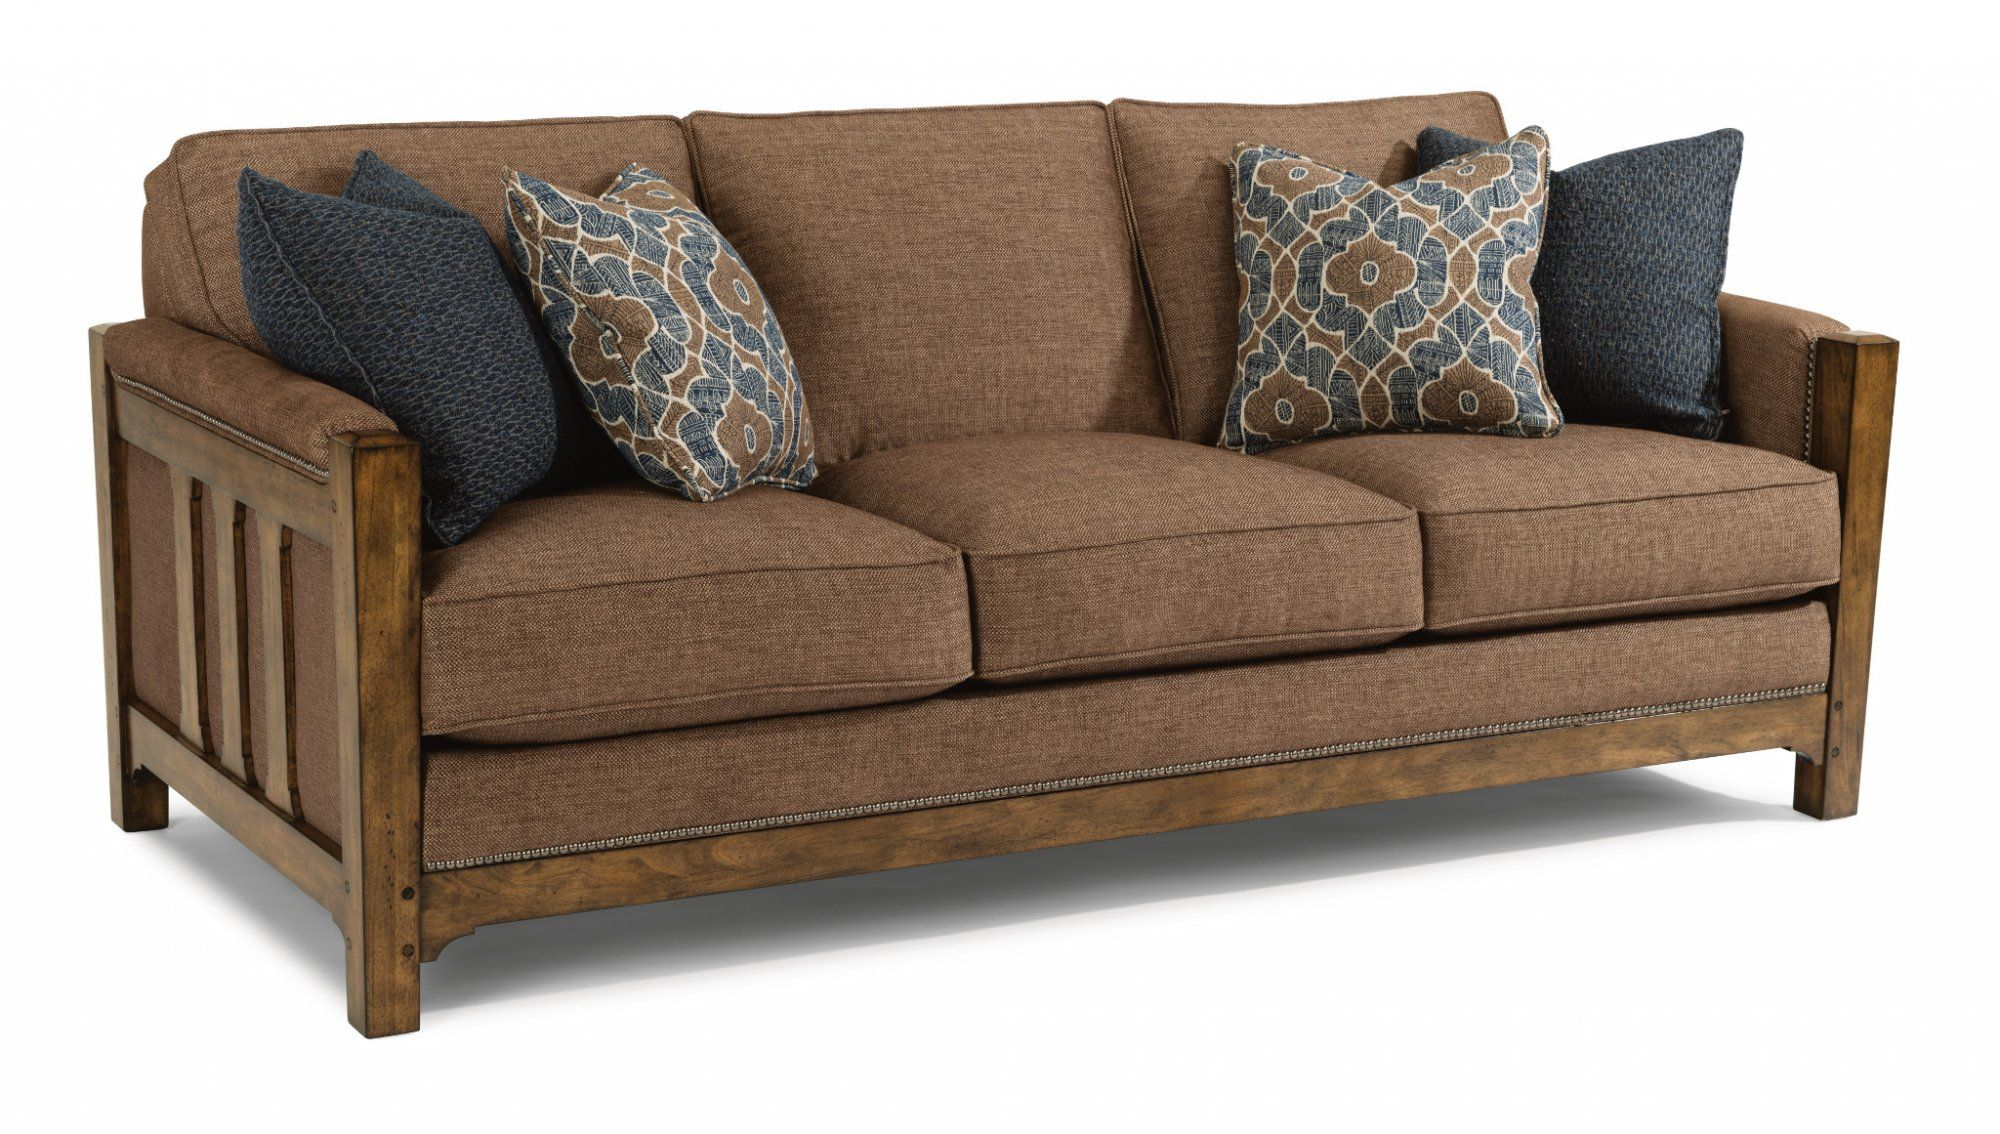 Flexsteel Dana Sofa Flexsteel Living Room Sofa 82 Dana